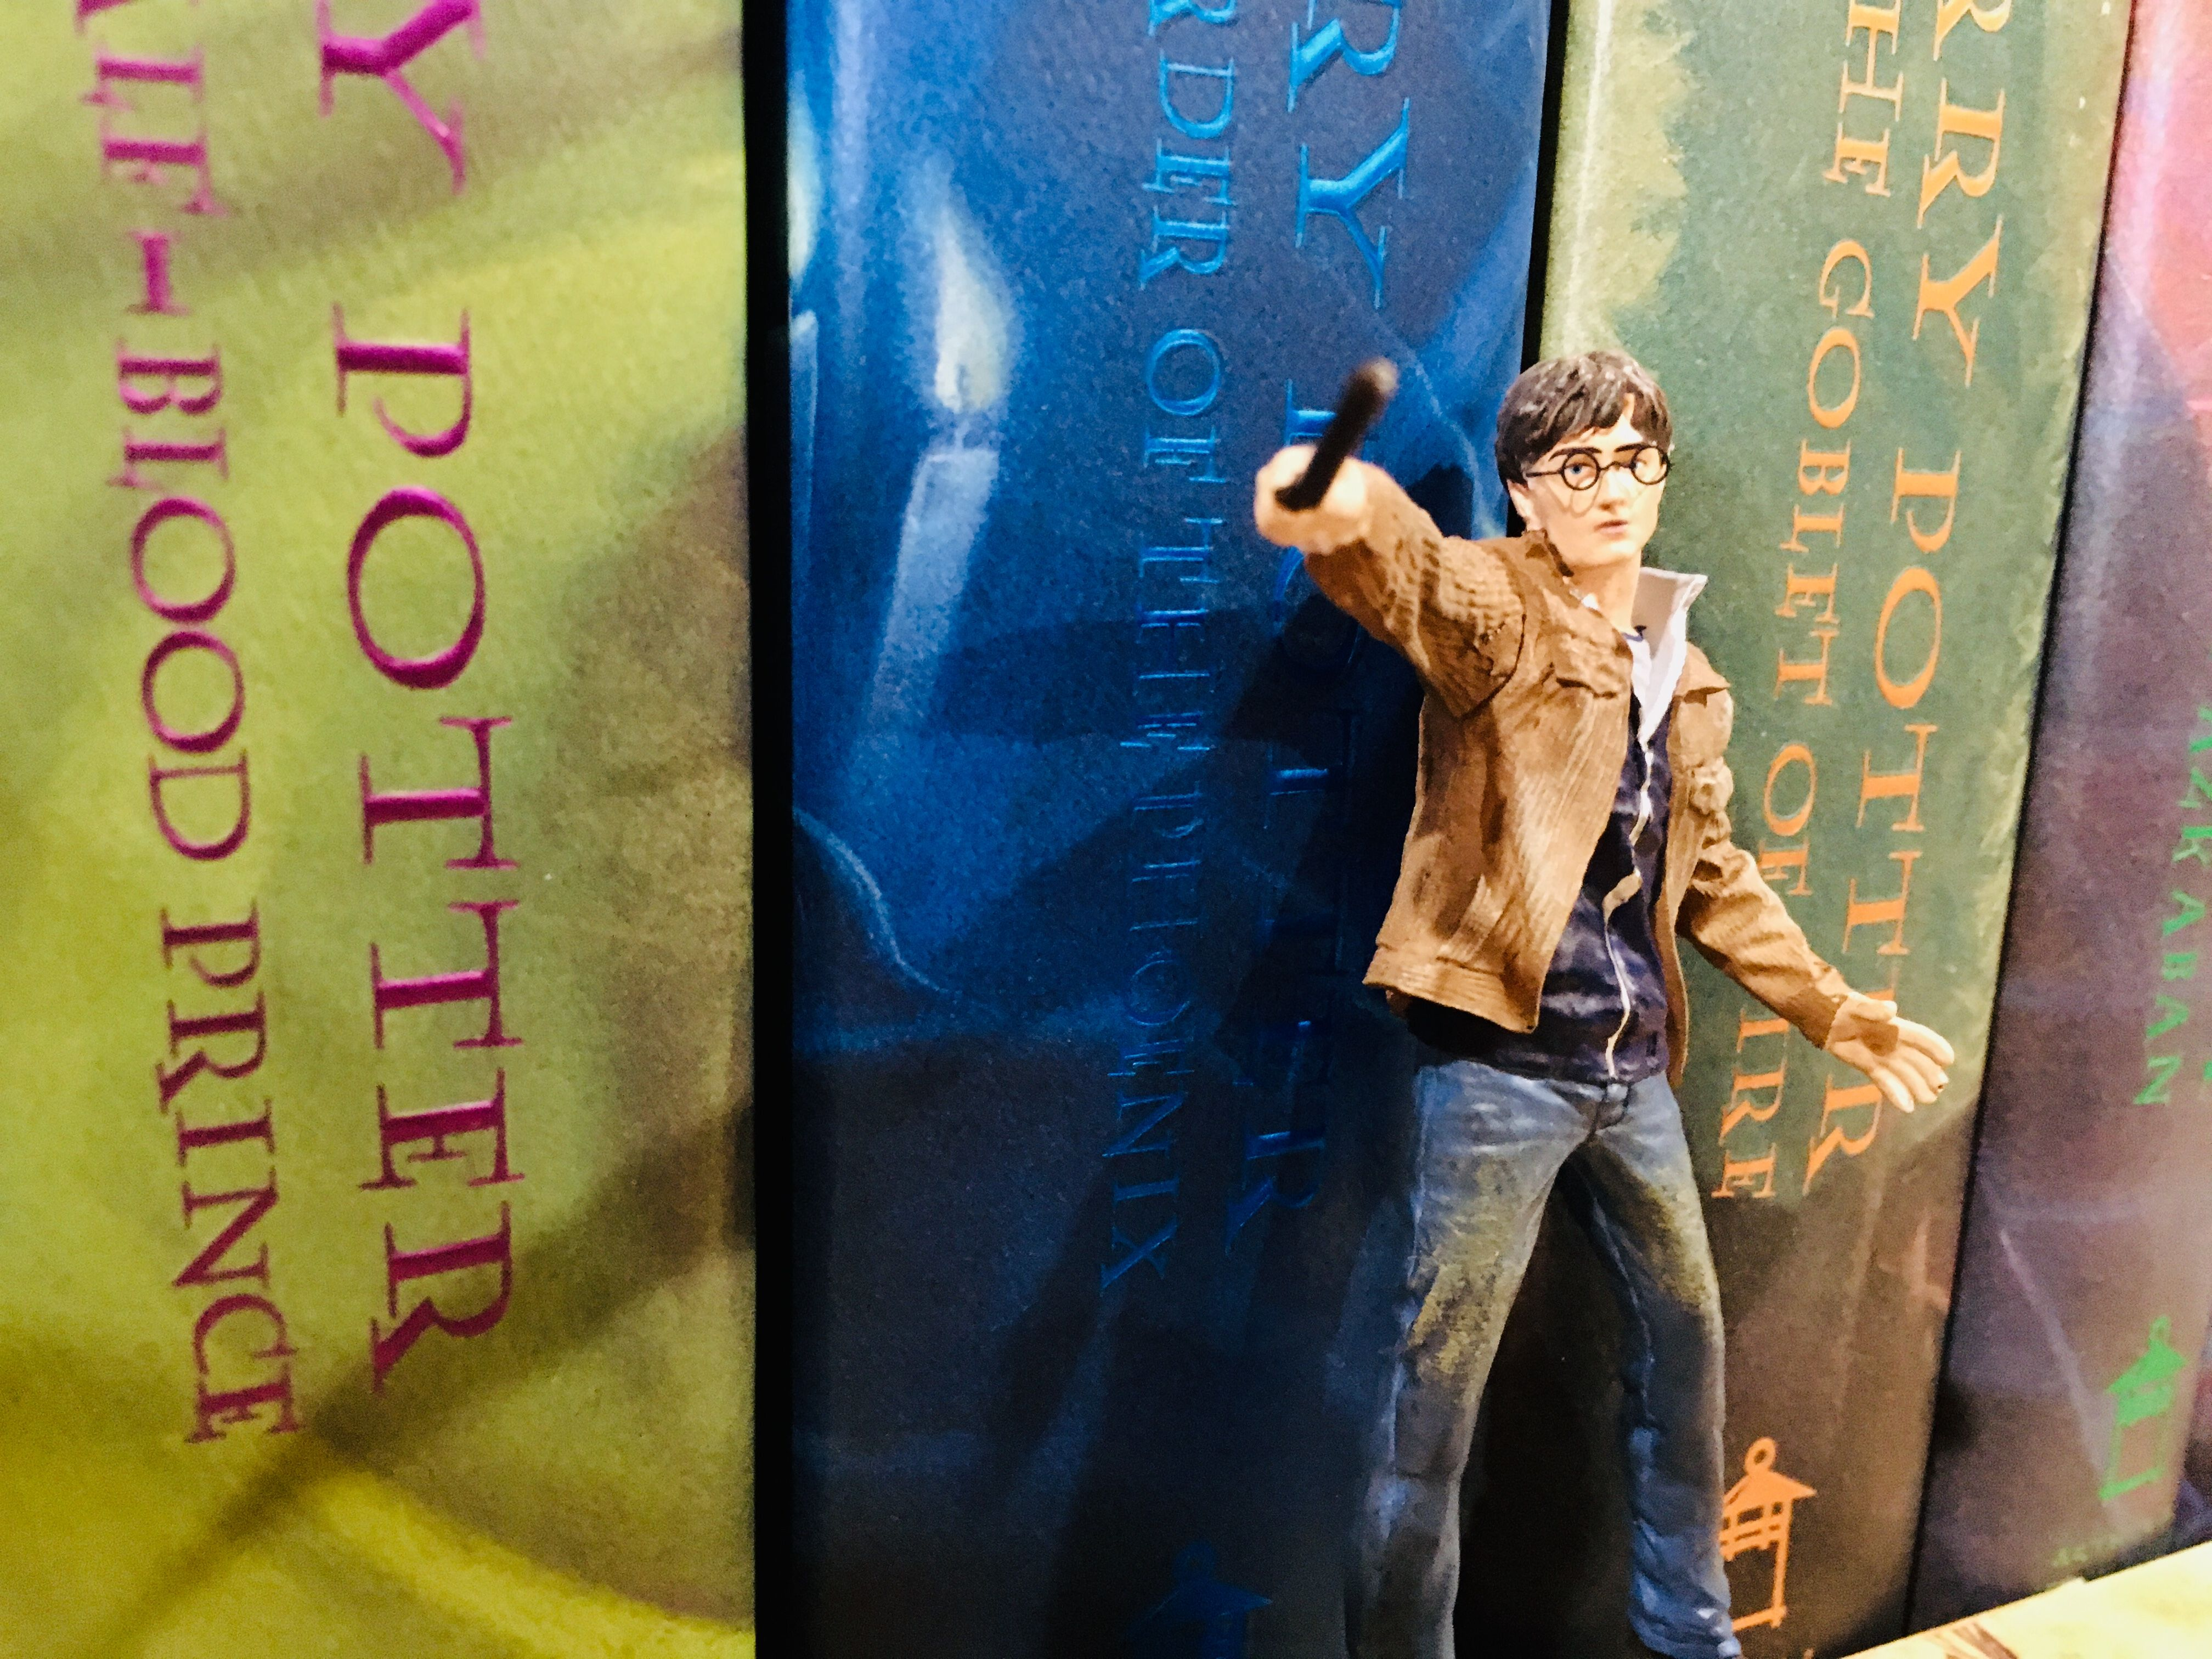 Harry's wand hand is outstretched as he prepares to fight He-Who-Must-Not-Be-Named.